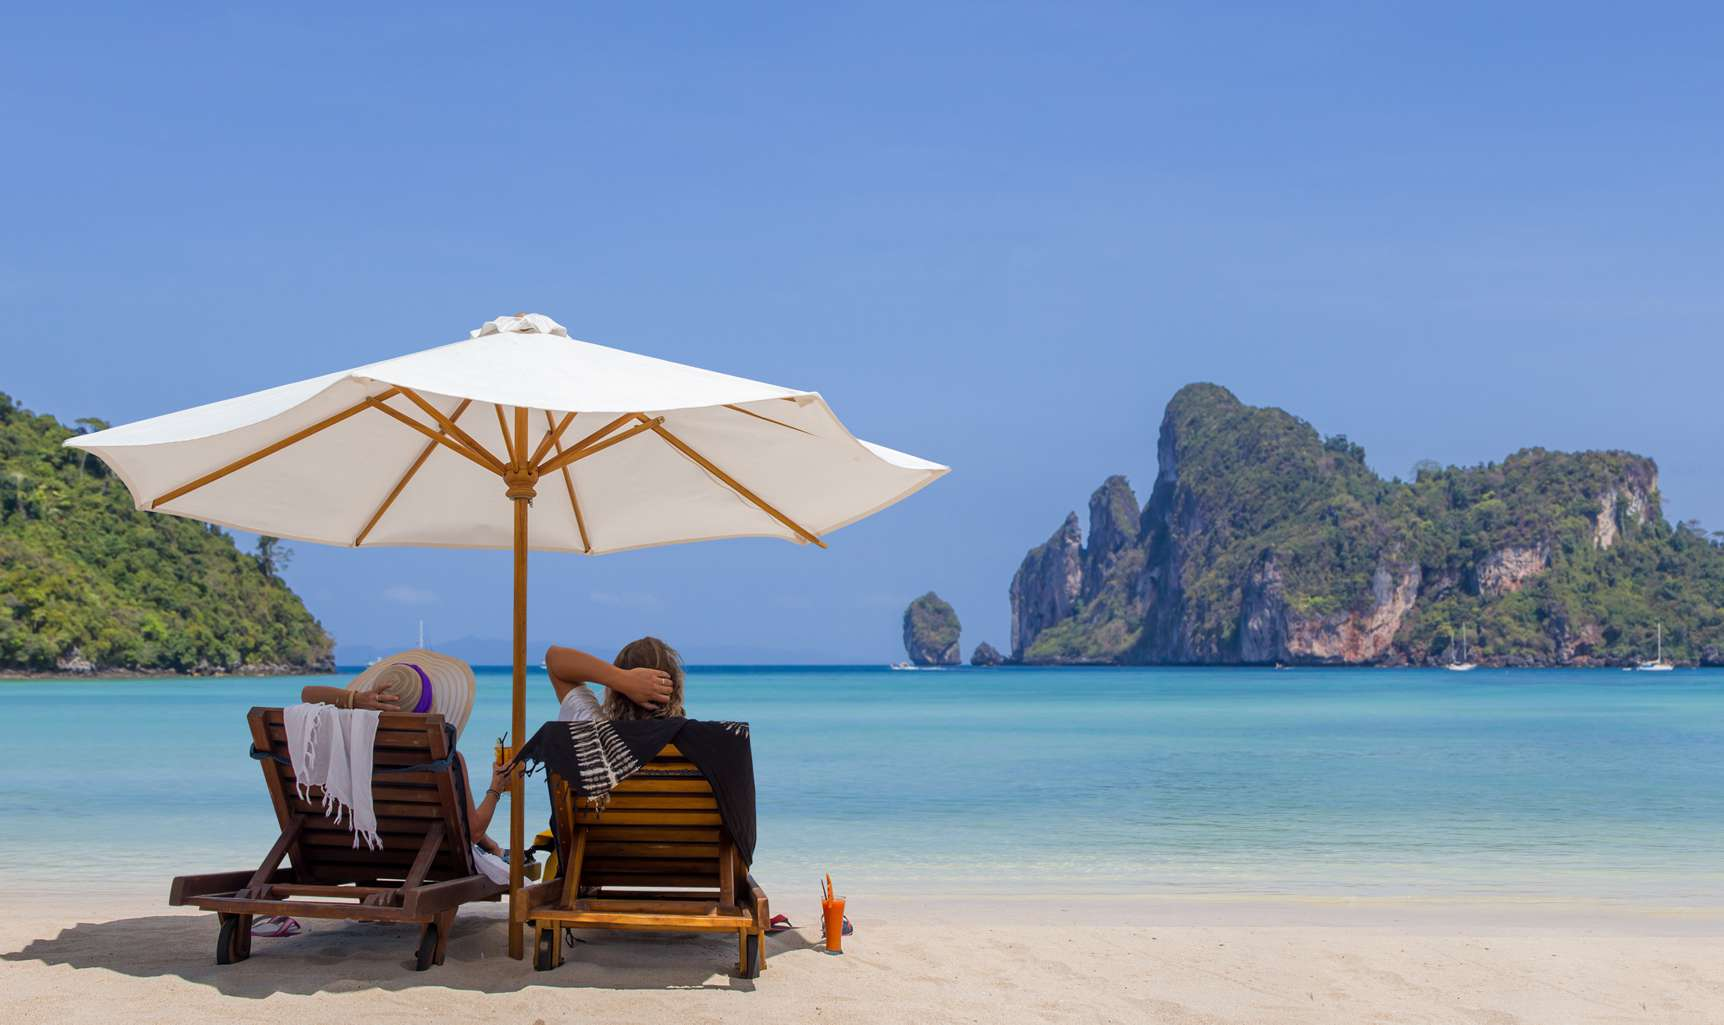 Enjoy a Wide Selection of Hotels in your dream Vacation